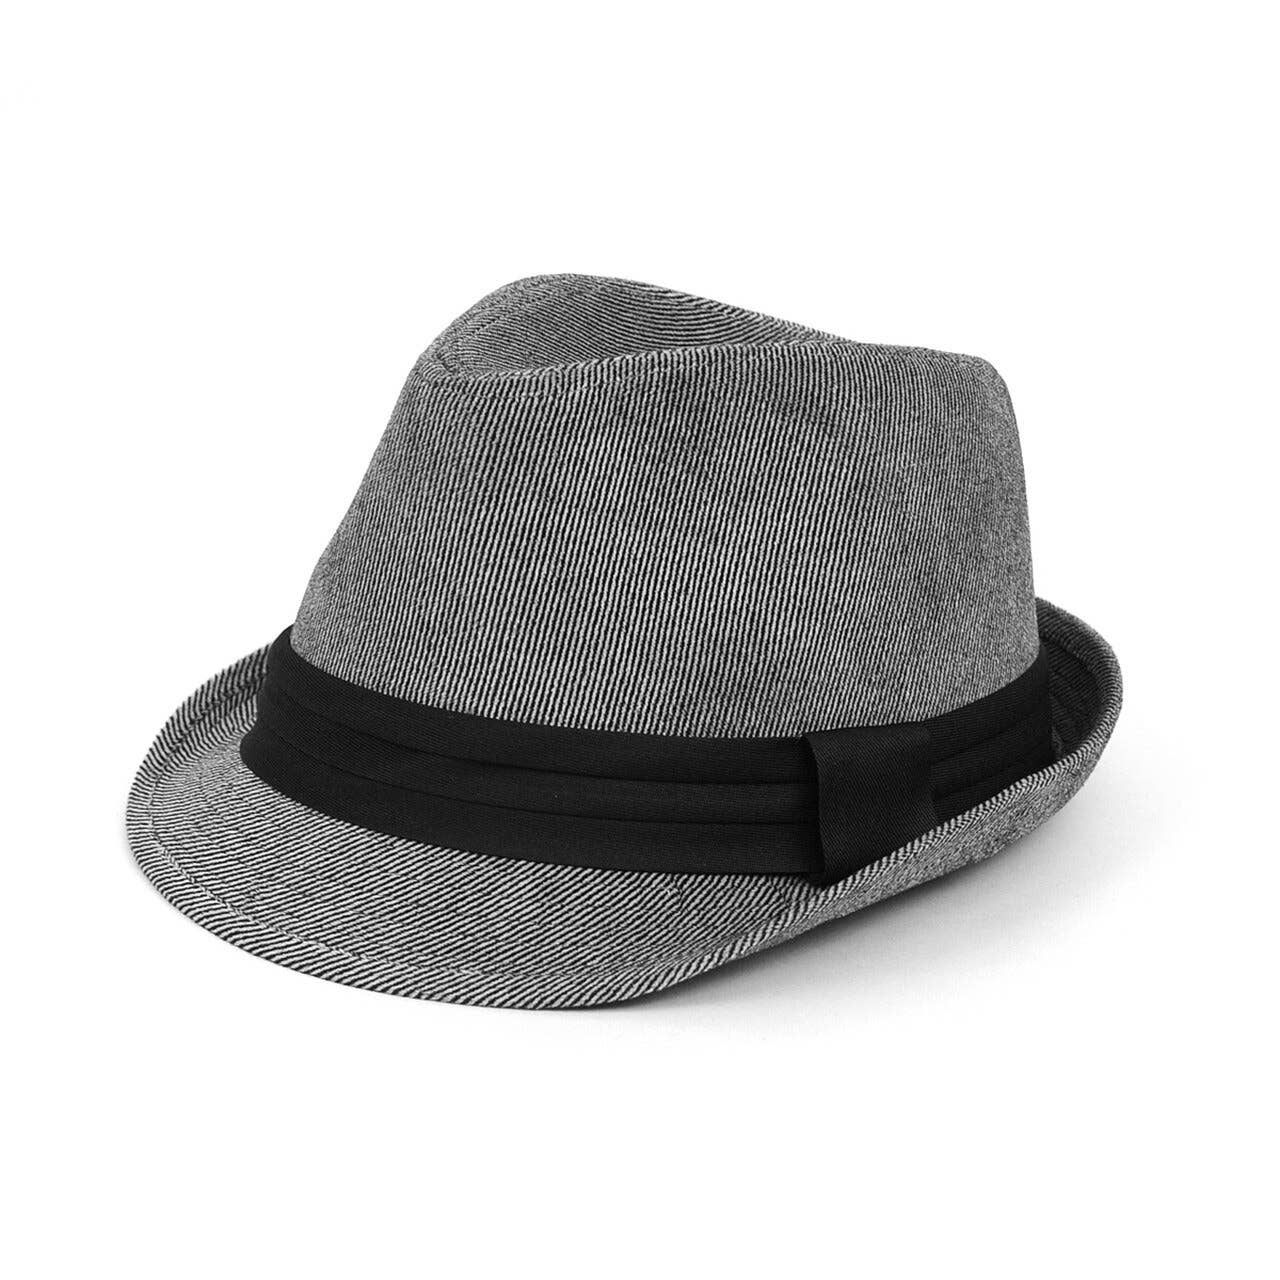 Fall/Winter Soft Pinstripe Trilby Fedora Hat with Black Band